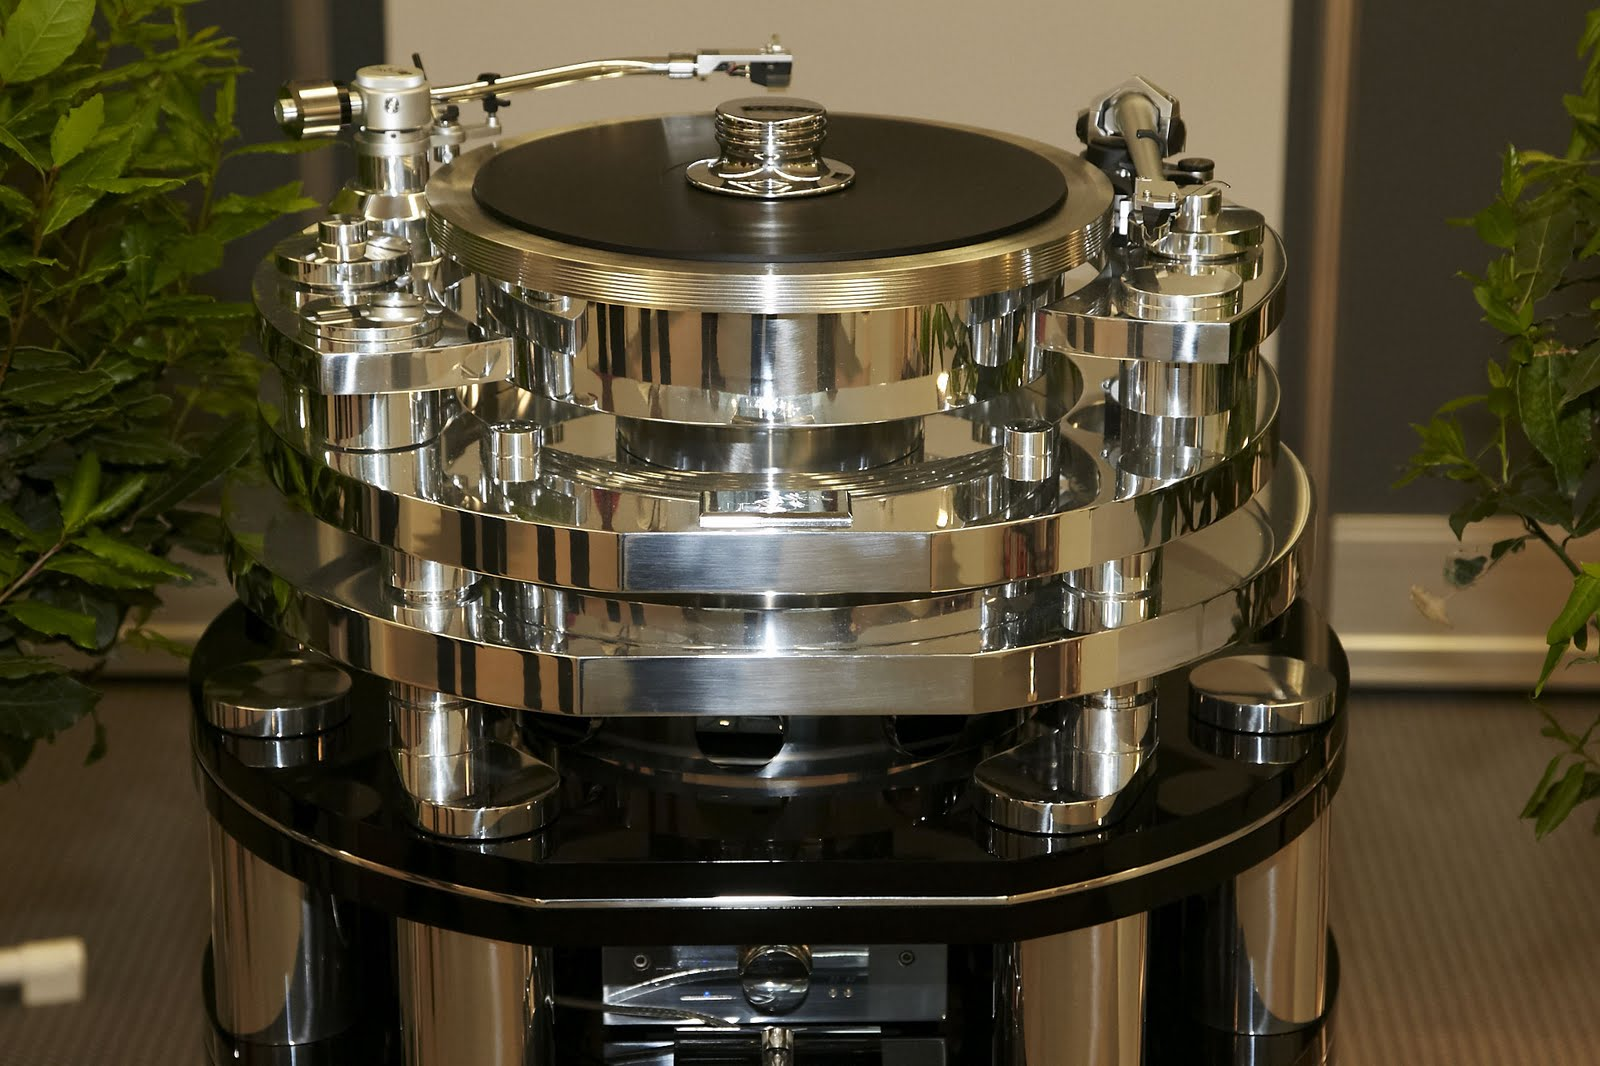 Wizard High-End Audio Blog: Turntables at HighEnd 2011 - part 2